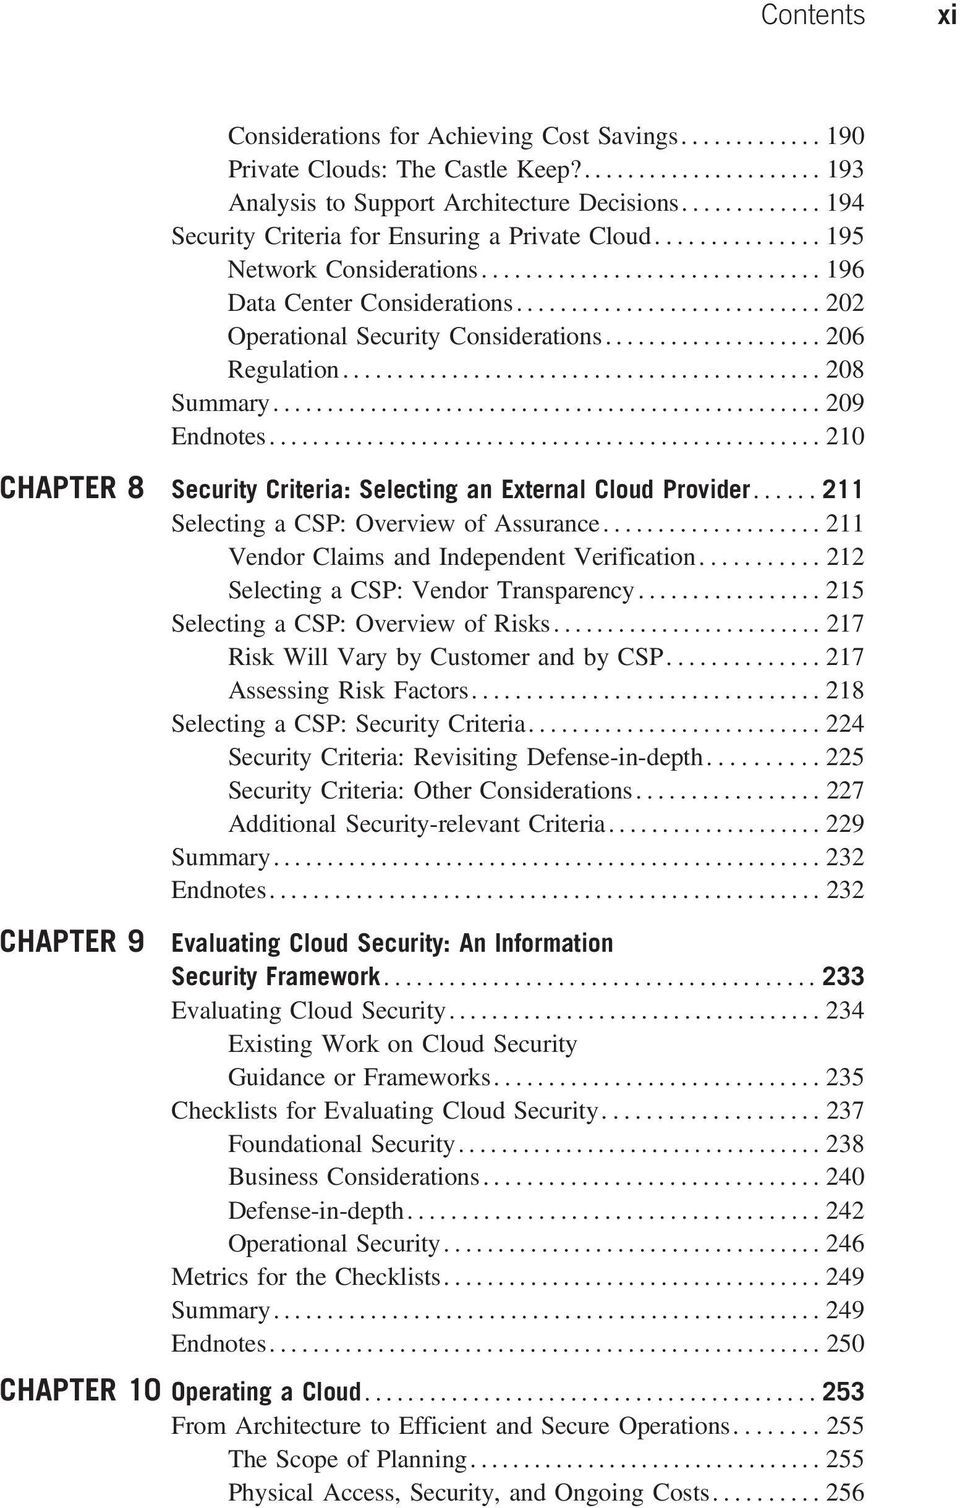 ..208 Summary...209 Endnotes................................................... 210 Security Criteria: Selecting an External Cloud Provider...211 Selecting a CSP: Overview of Assurance.